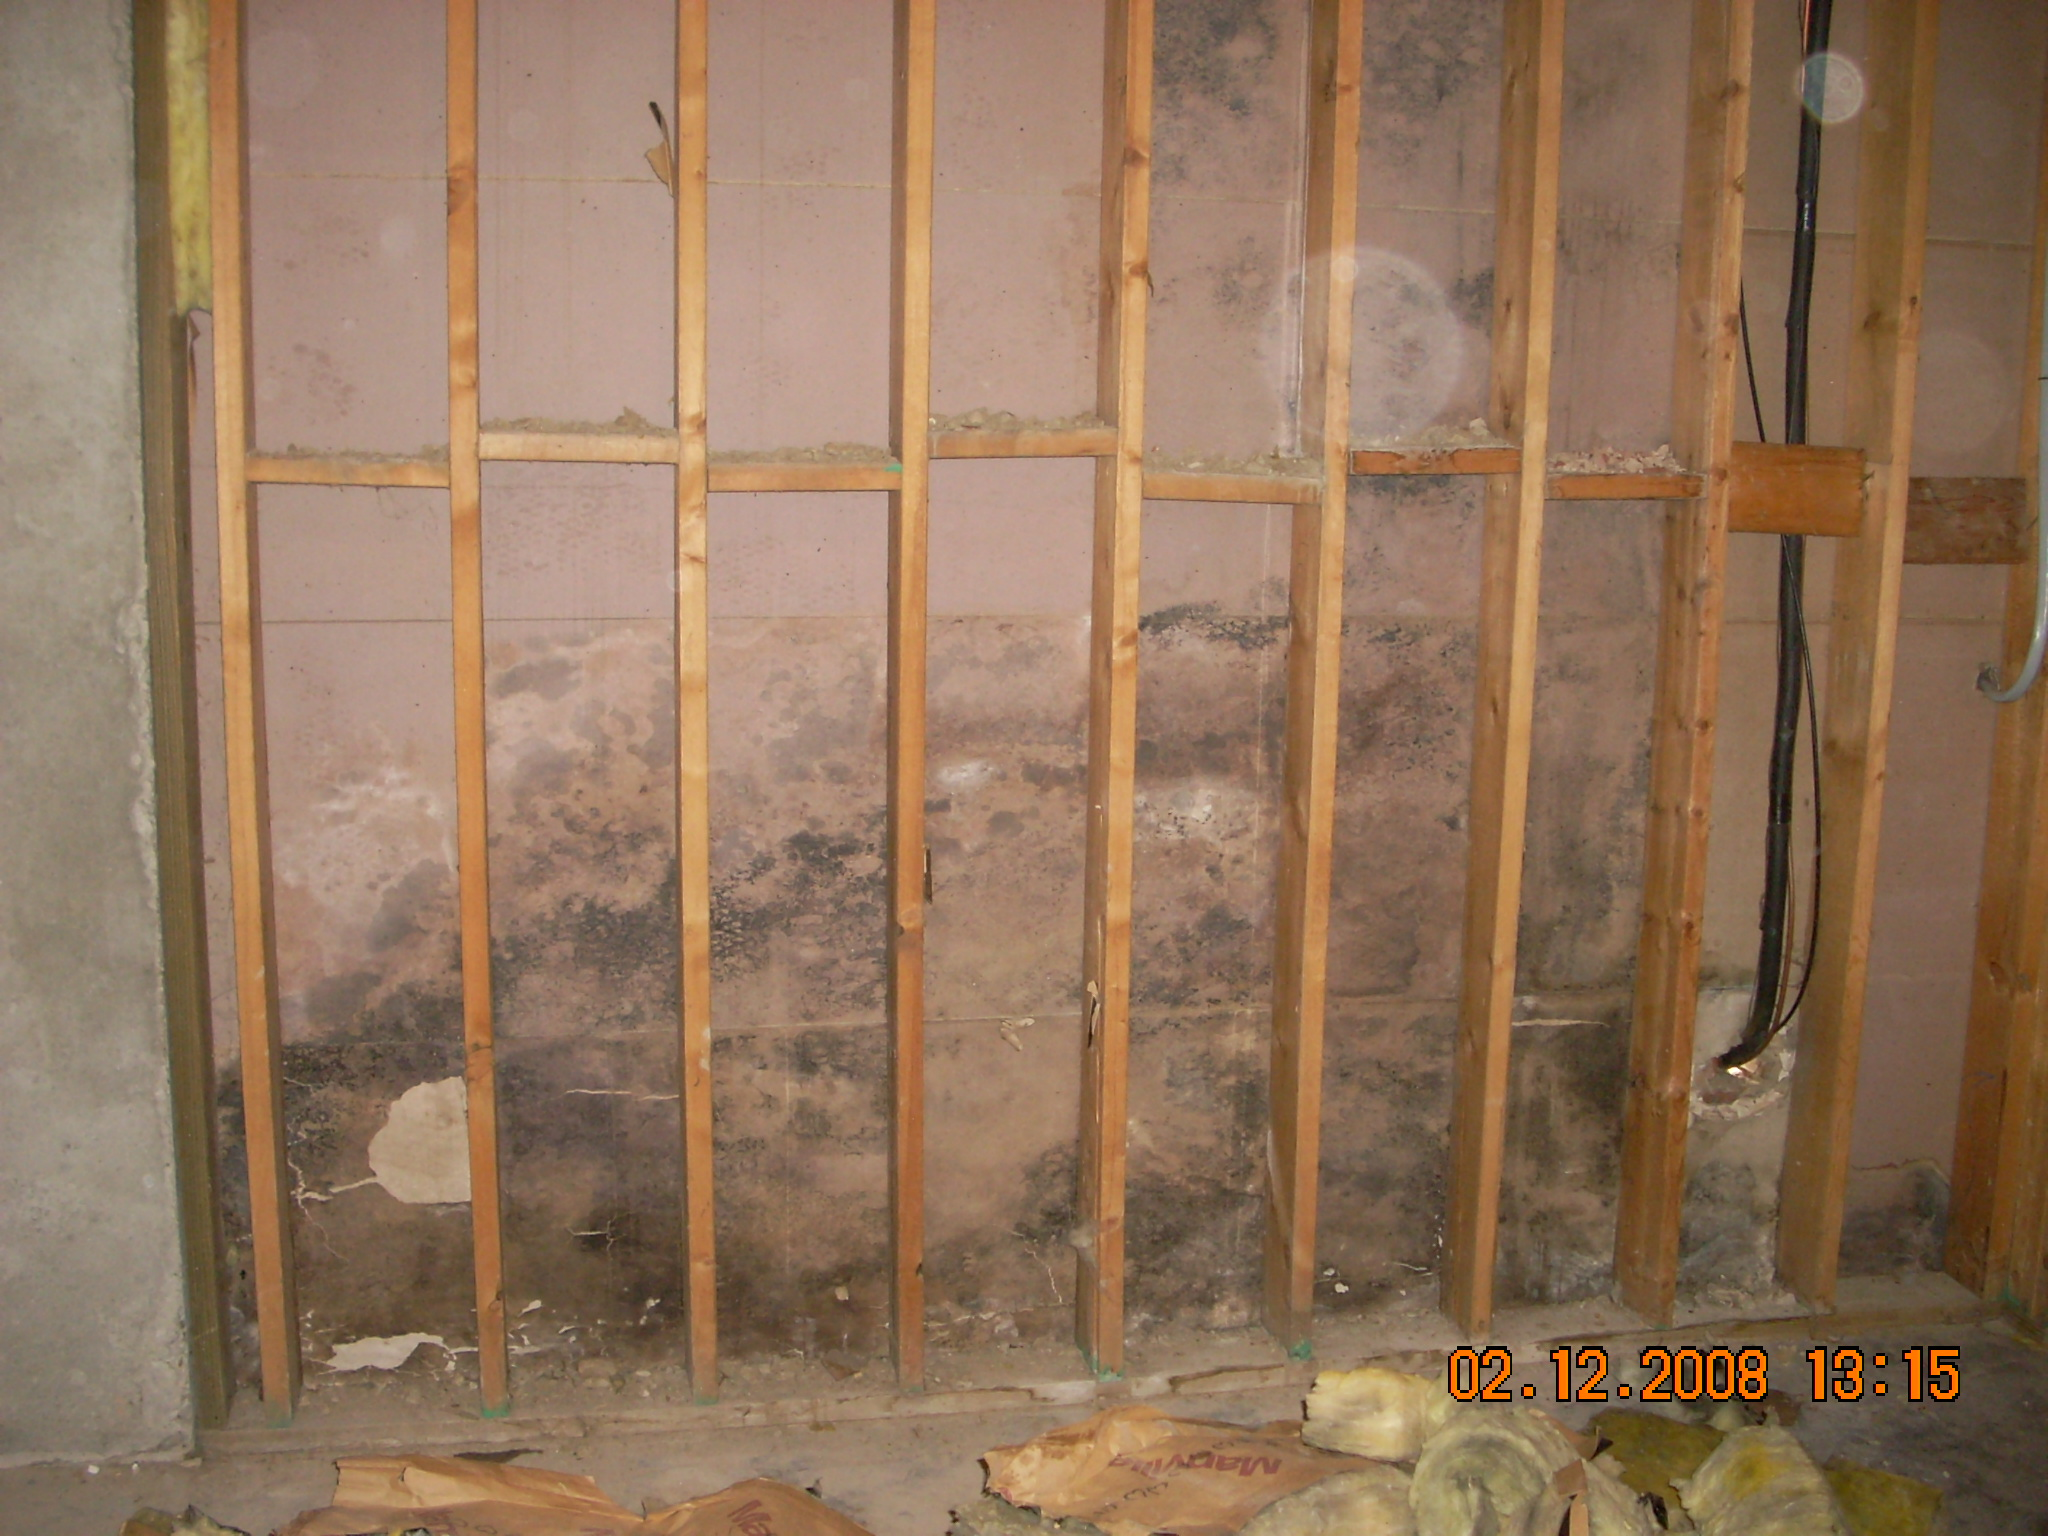 Exterior moisture and mold